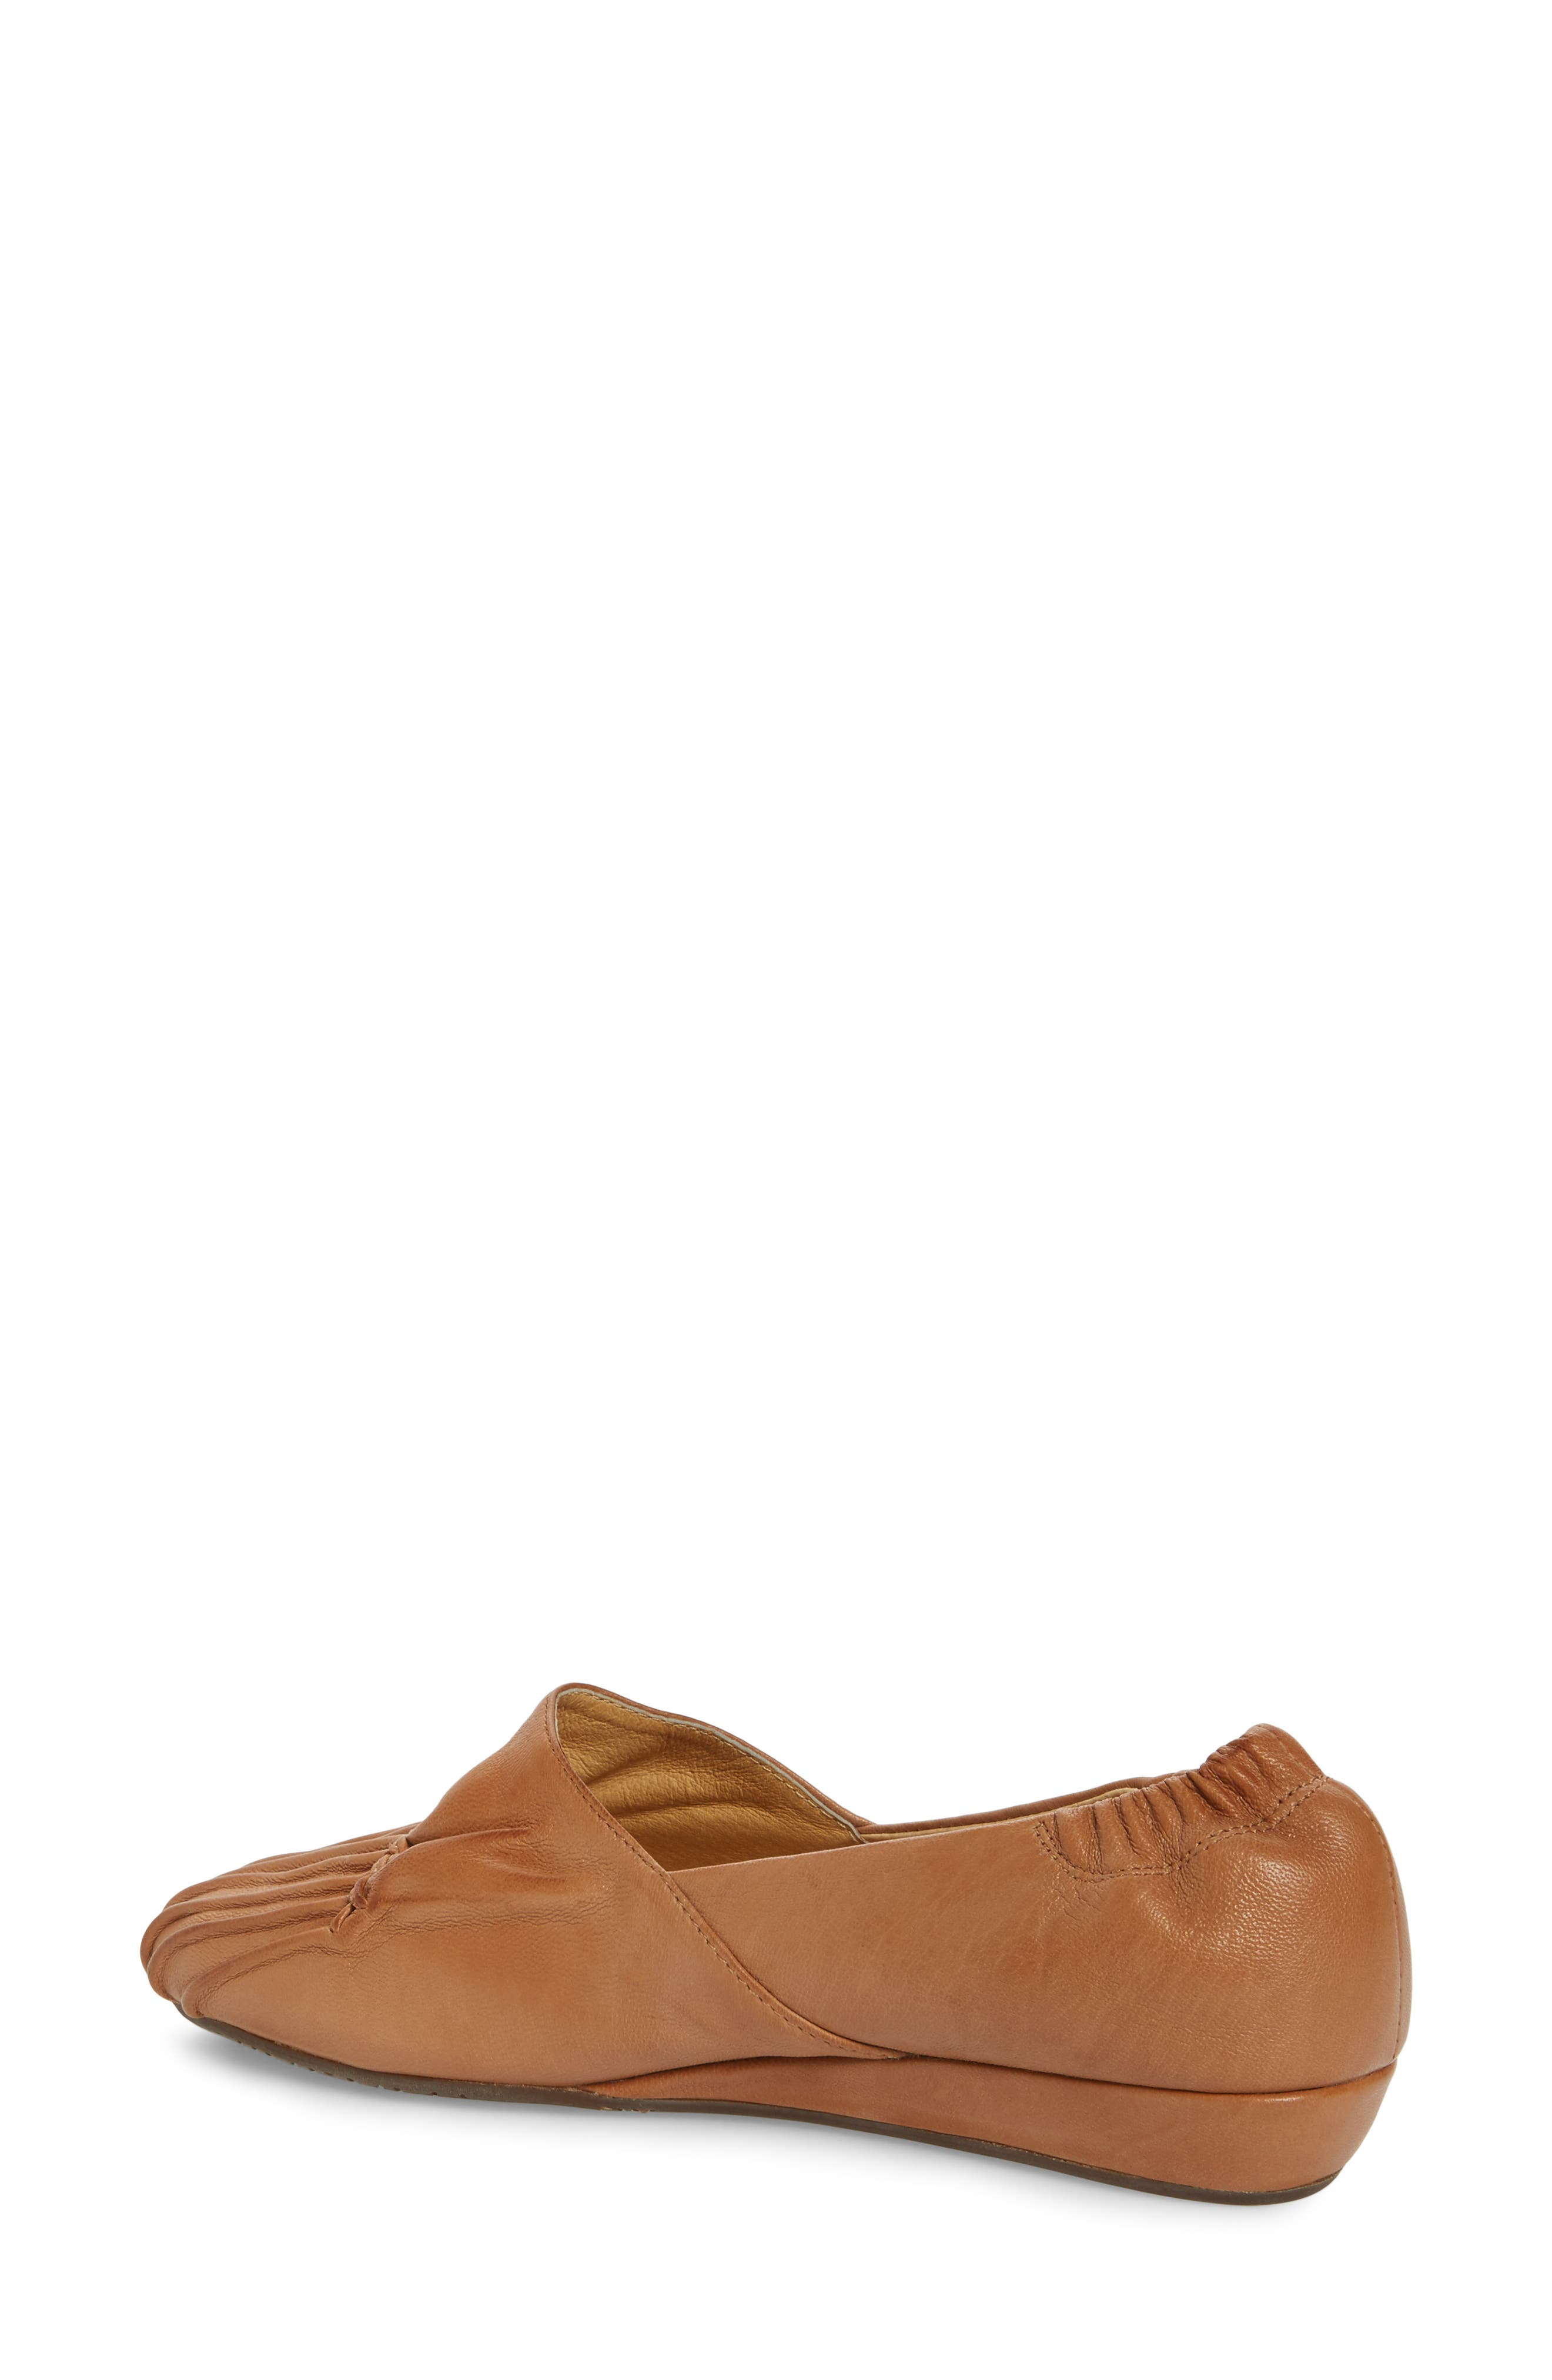 Vic Low Pleated Wedge,                             Alternate thumbnail 2, color,                             200